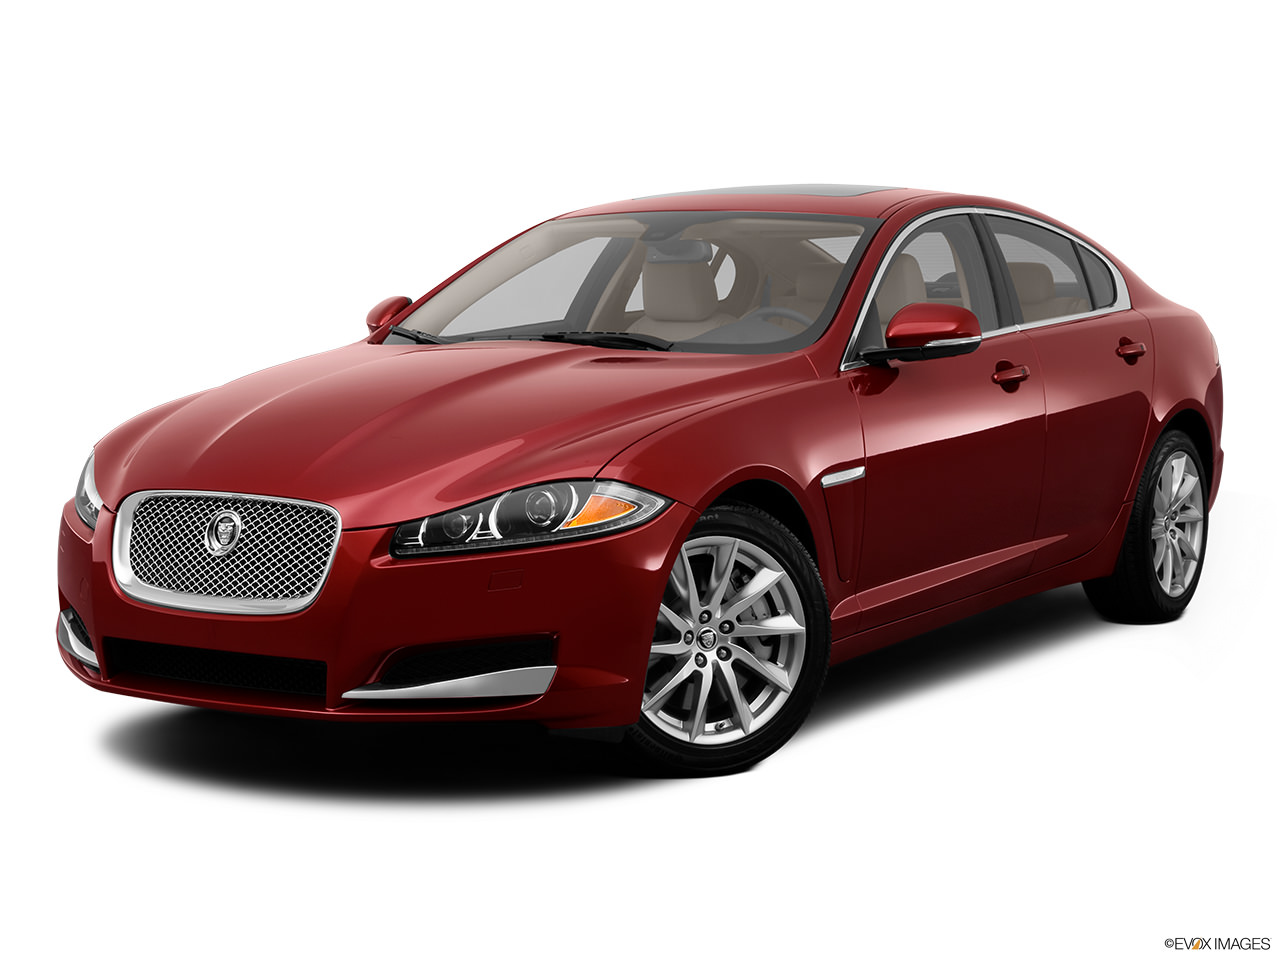 jaguar certified pre-owned (cpo) car program | yourmechanic advice